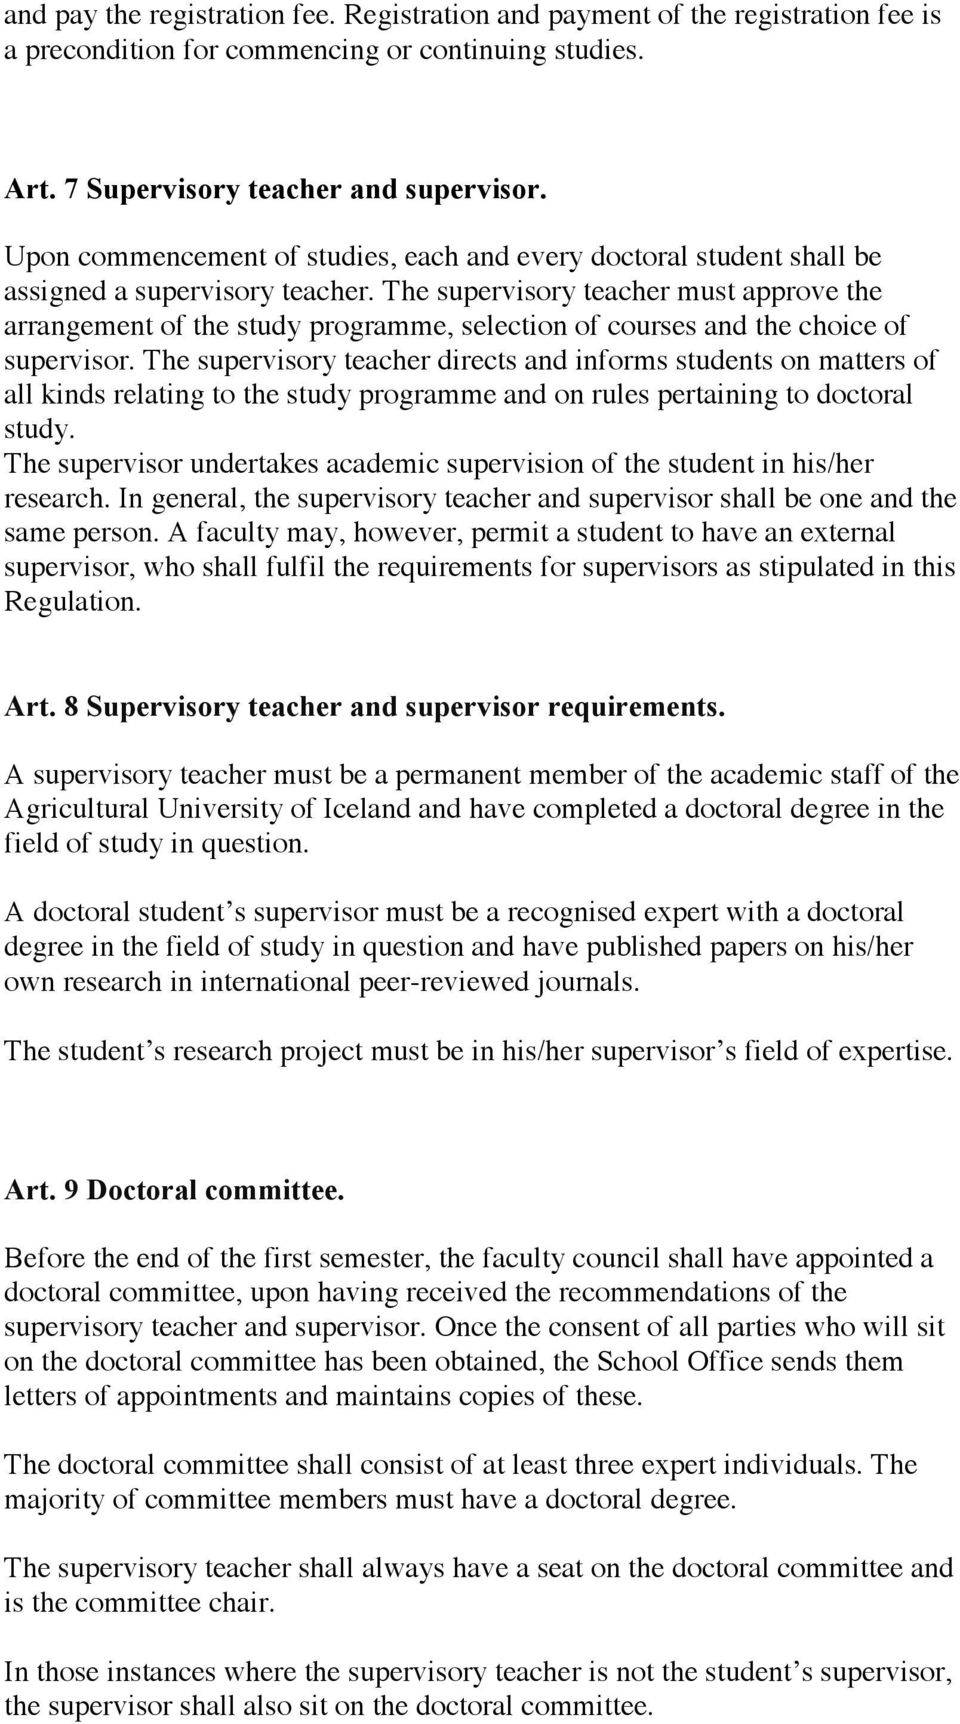 The supervisory teacher must approve the arrangement of the study programme, selection of courses and the choice of supervisor.